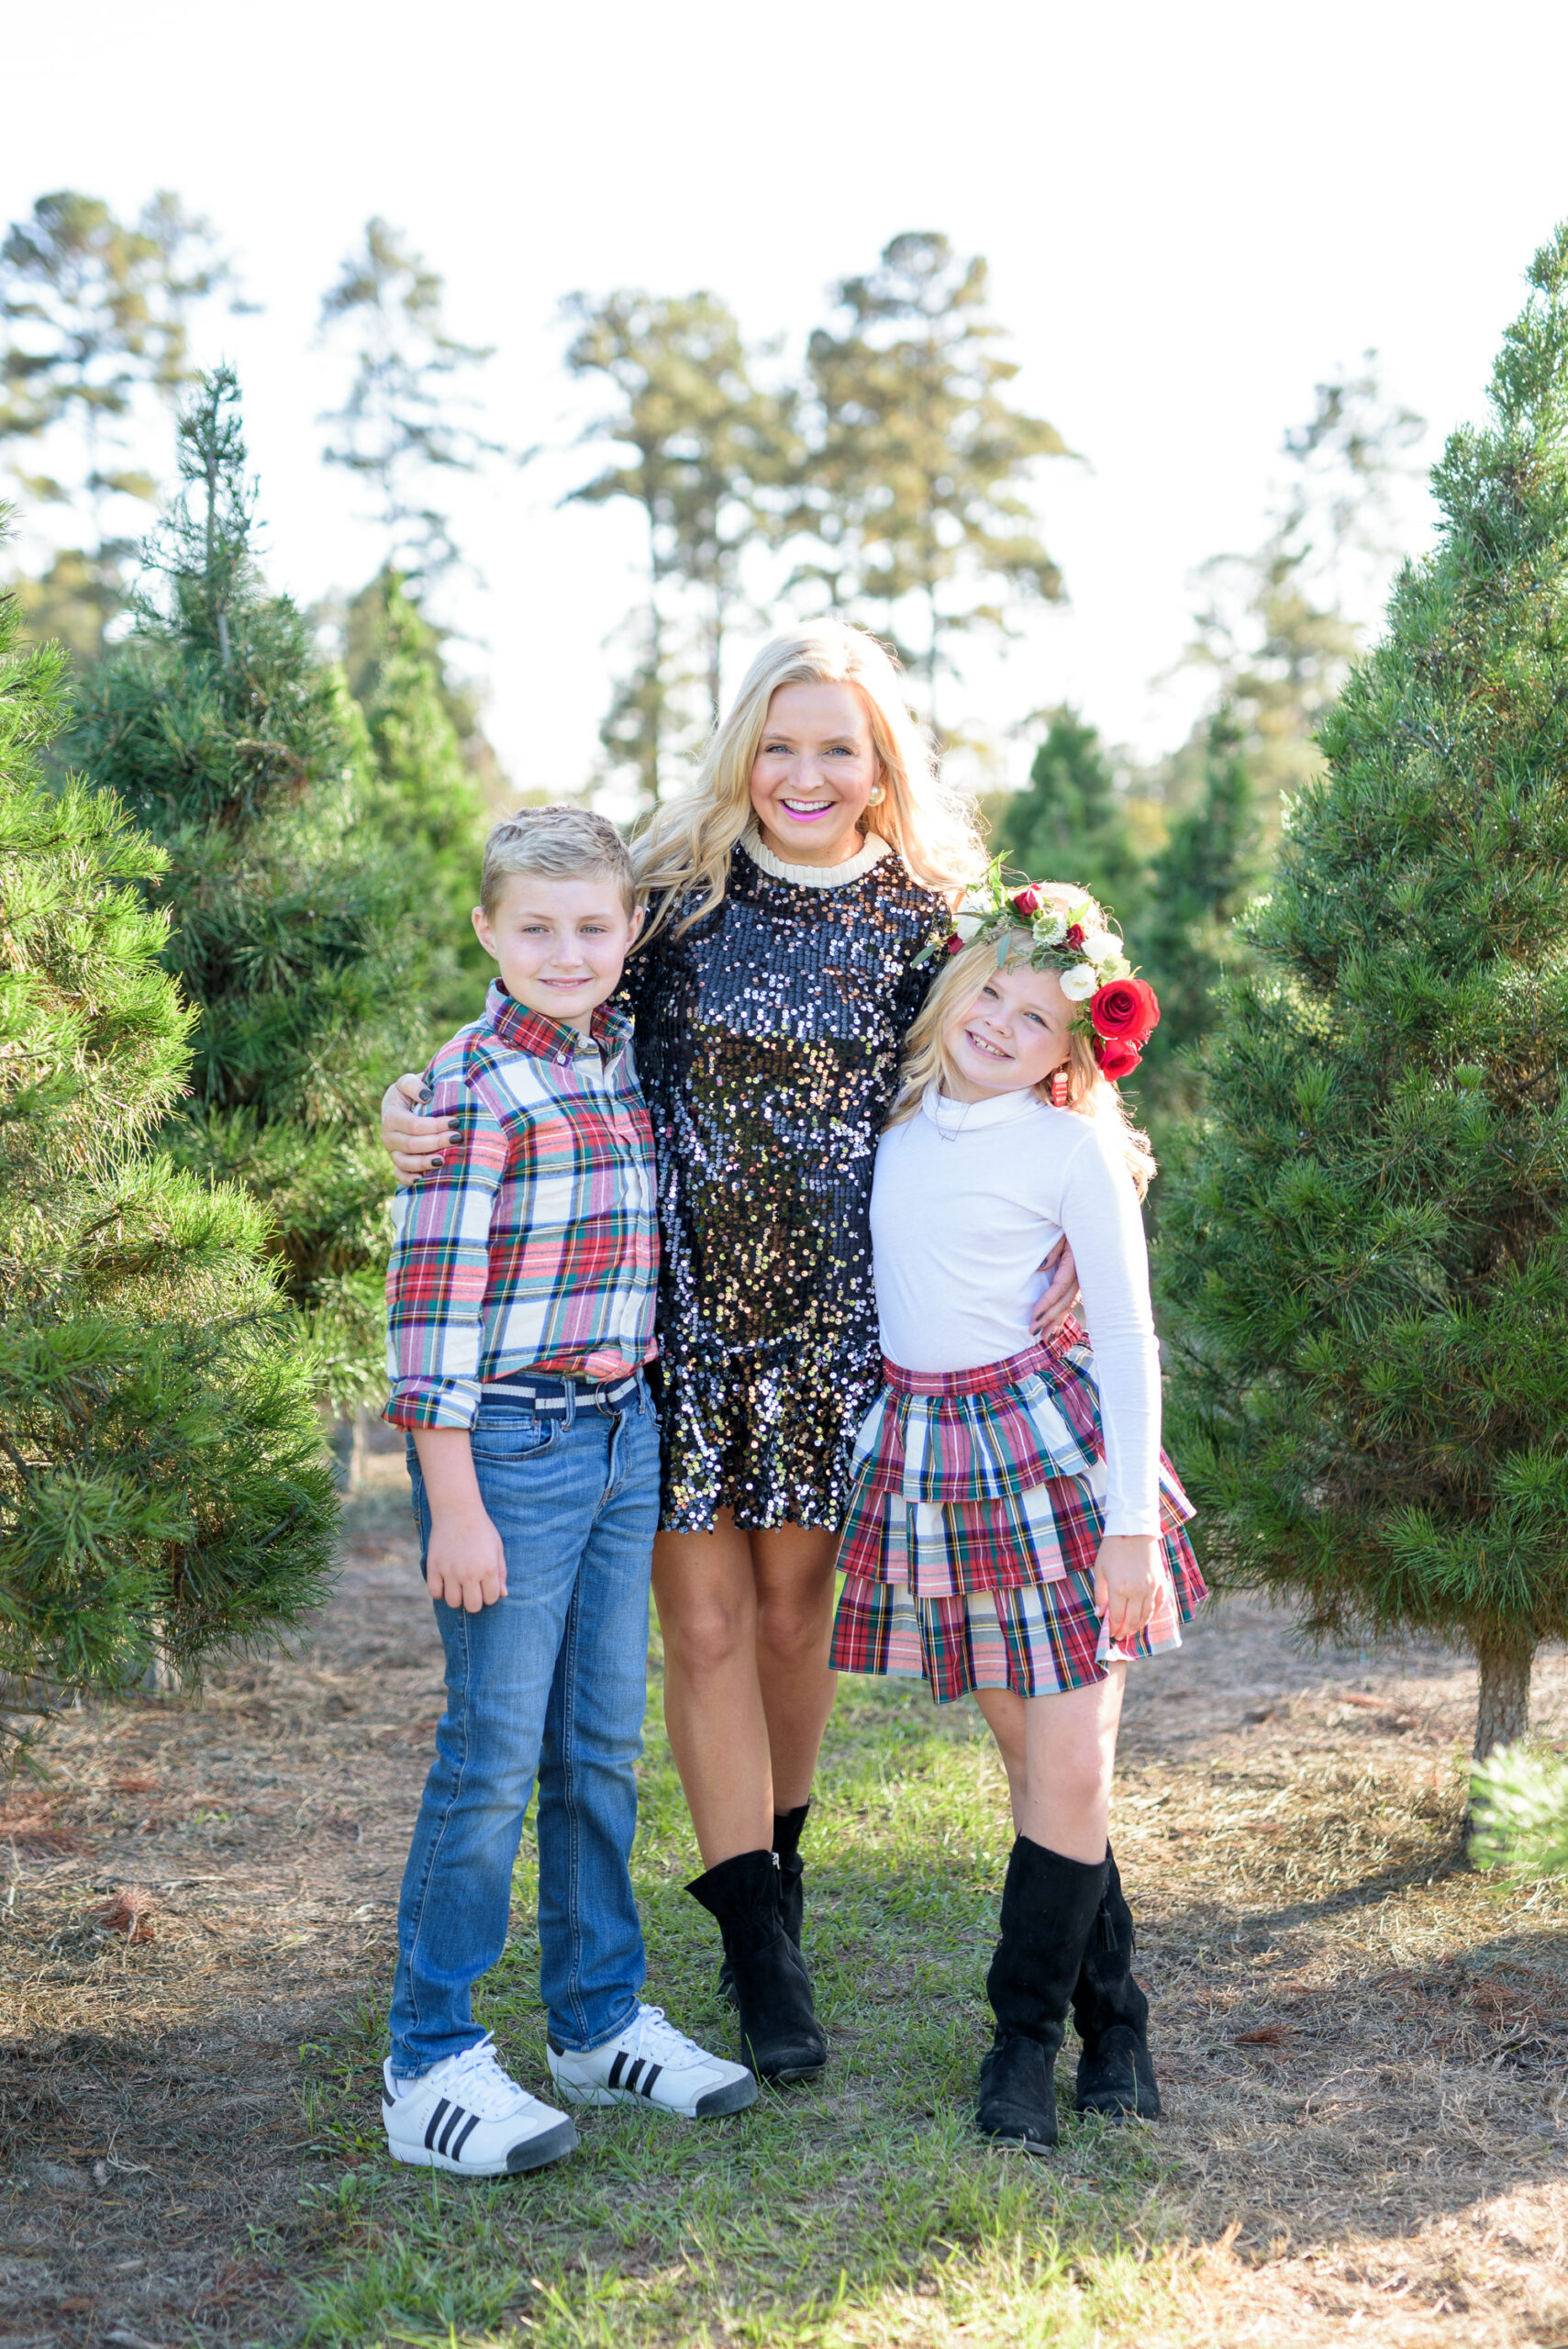 Christmas Tree Farm Photos by popular Houston lifestyle blog, Fancy Ashley: image of a mom and her two children standing together in a row of pine trees and wearing a black sequin dress, black suede ankle boots, plaid button up shirt, jeans, white long sleeve turtleneck shirt, plaid ruffle tier skirt, floral crown and black suede boots.